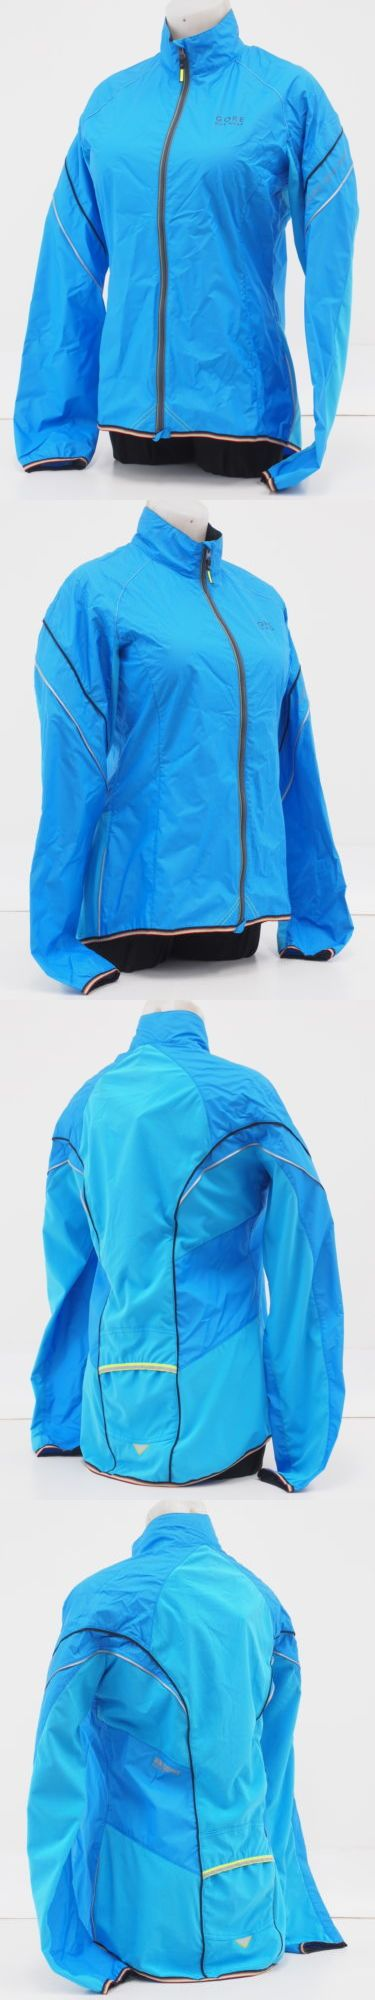 Jackets 36124: New! Gore Bike Wear Power As Lady Cycling Jacket Size Large Eu 40 Waterfall Blue -> BUY IT NOW ONLY: $39.99 on eBay!